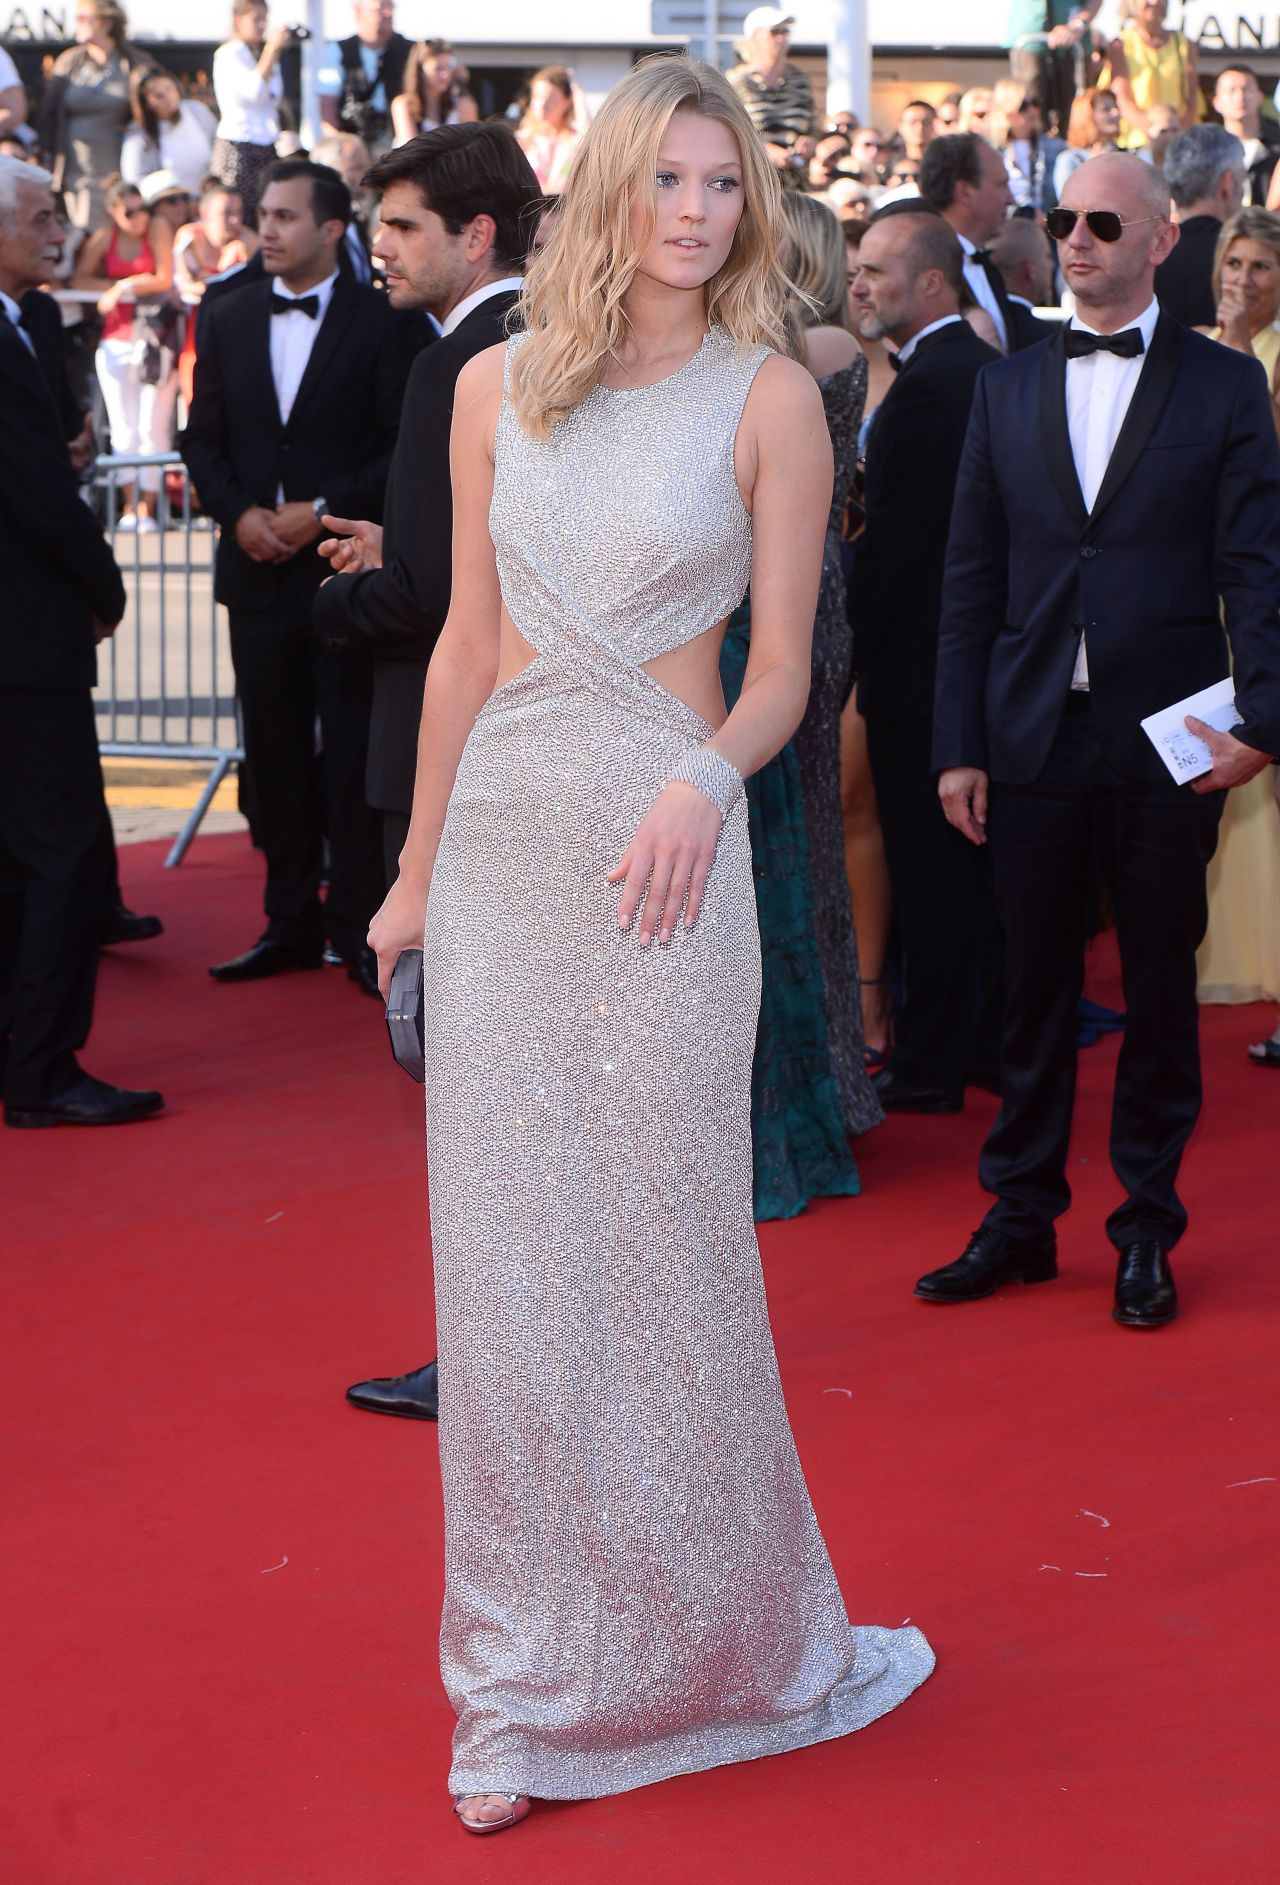 toni-garrn-the-little-prince-premiere-68th-annual-cannes-film-festival_